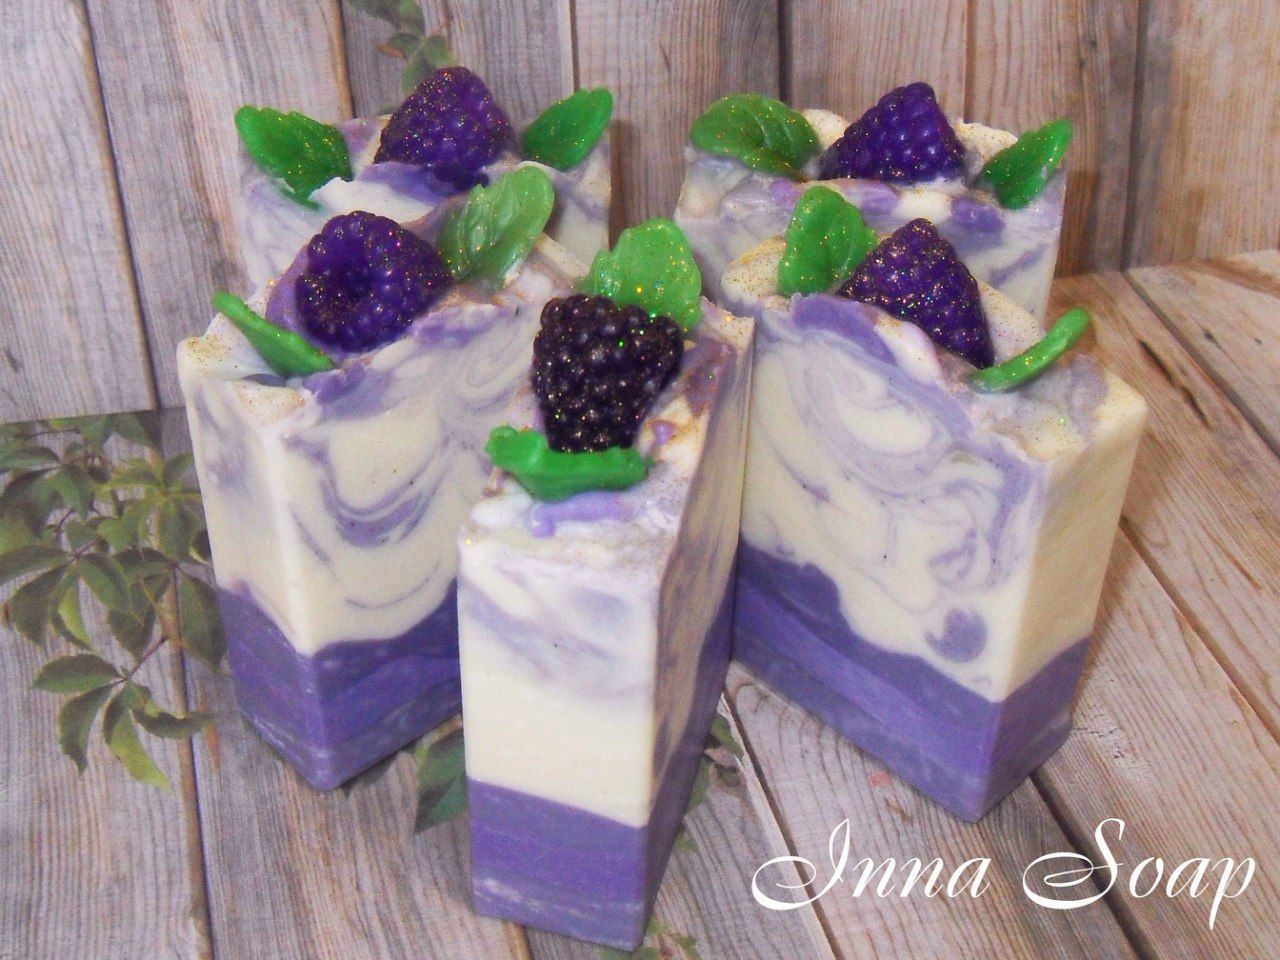 Natural soap from scratch in AVAILABILITY 169 photos